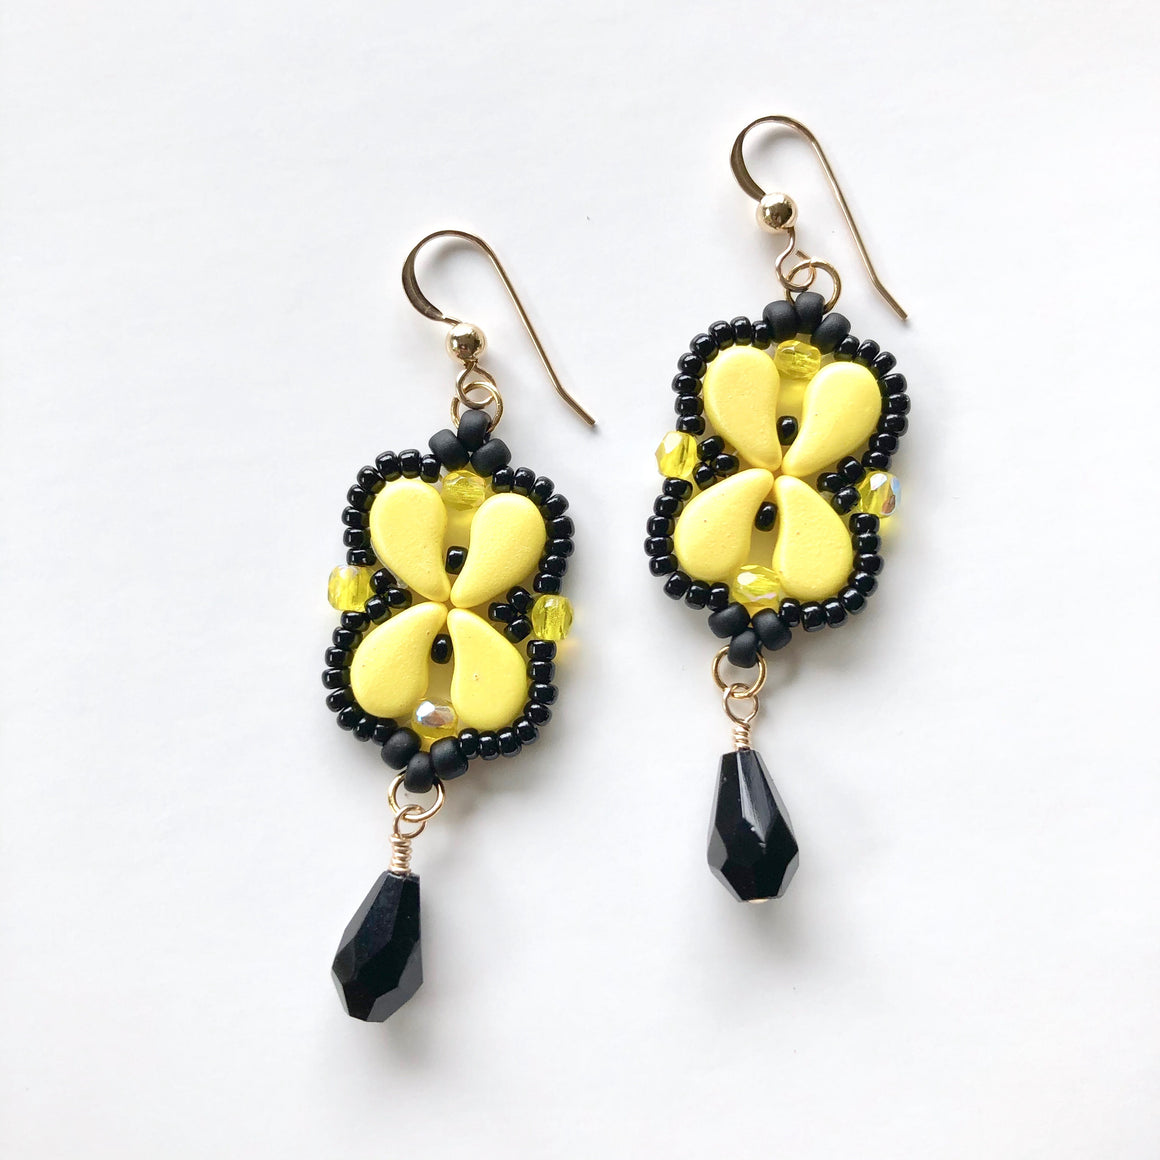 Arabesque Earrings Kit - Bumble Bee